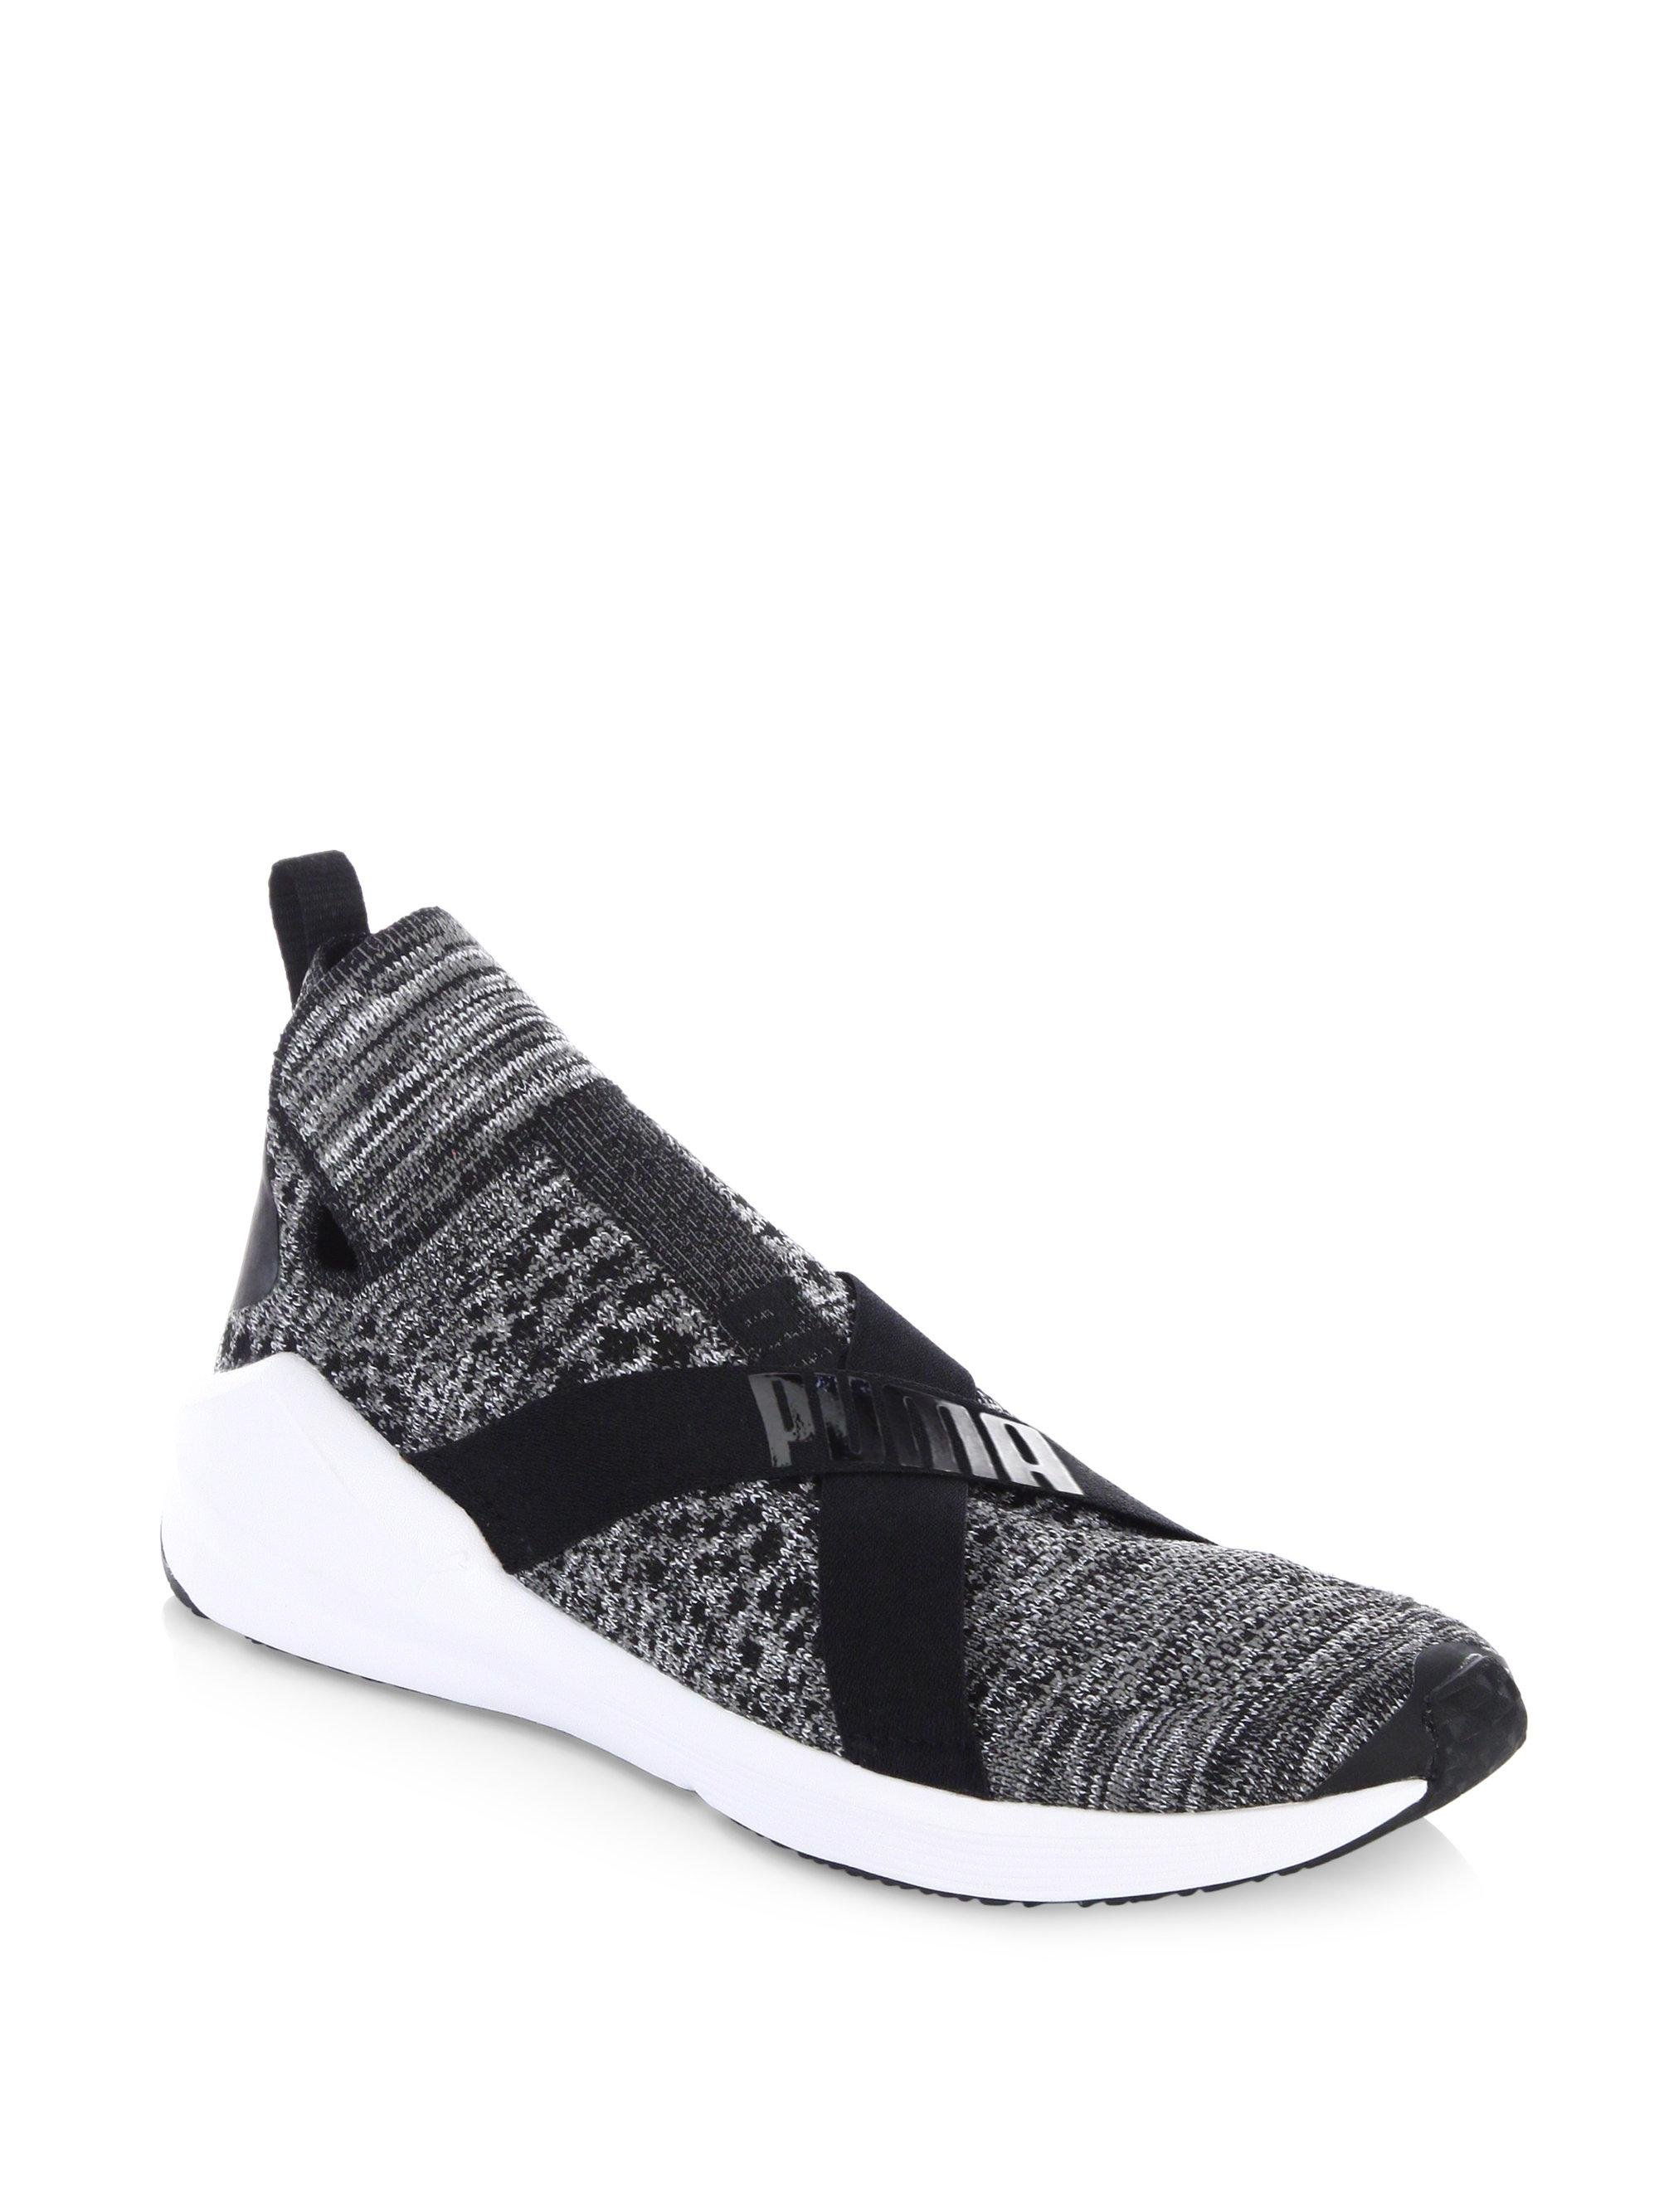 Lyst - PUMA Fierce Evoknit Training Shoes in Black b426e75bb